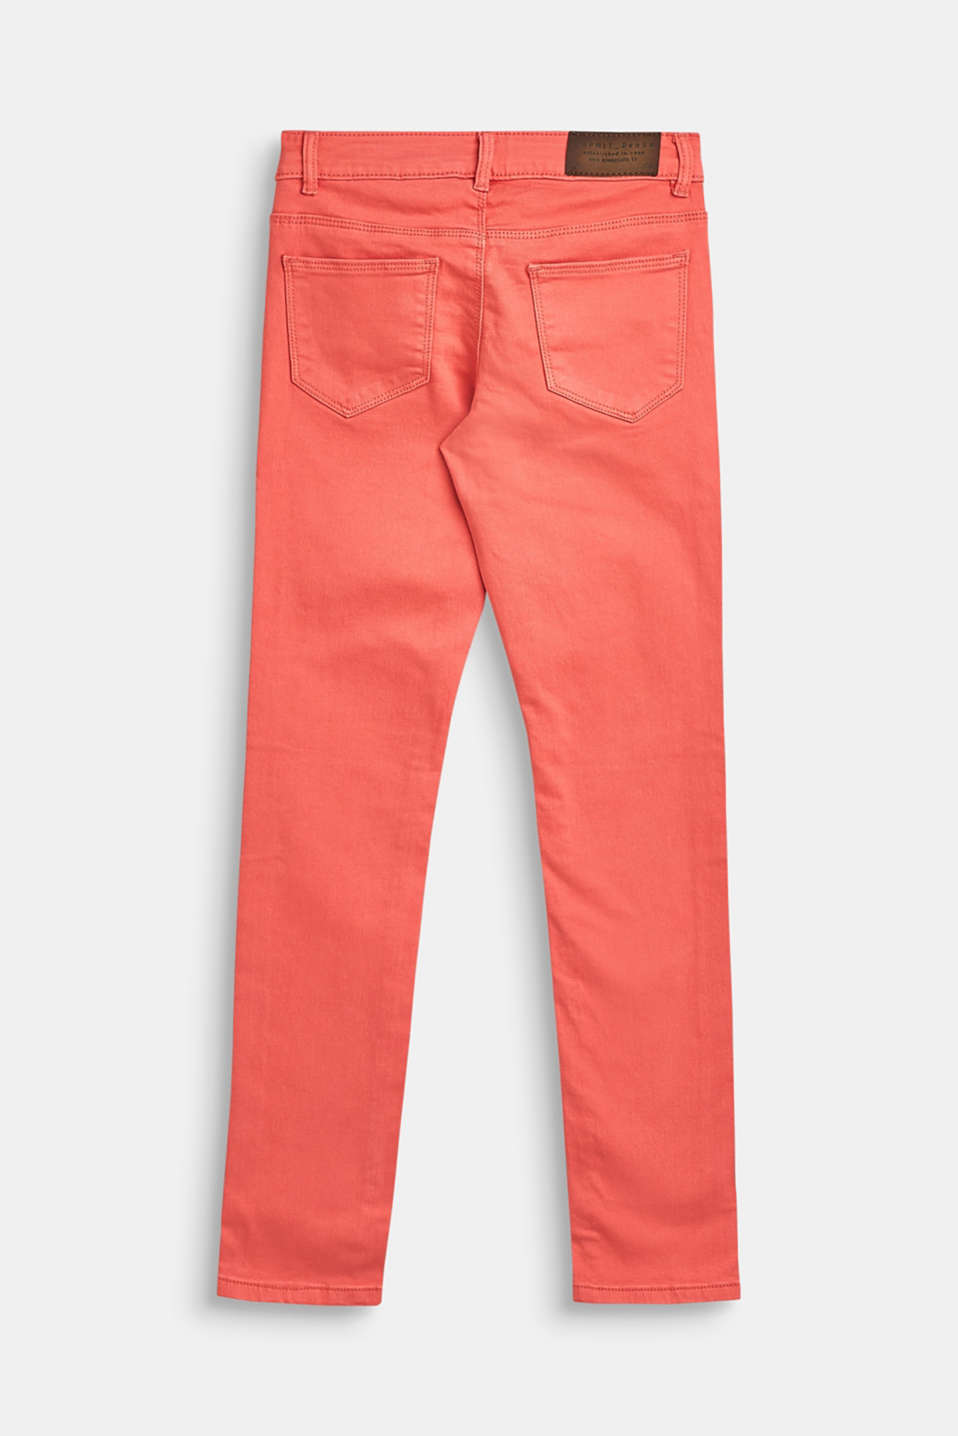 Stretch cotton trousers with an adjustable waistband, LCCORAL, detail image number 1